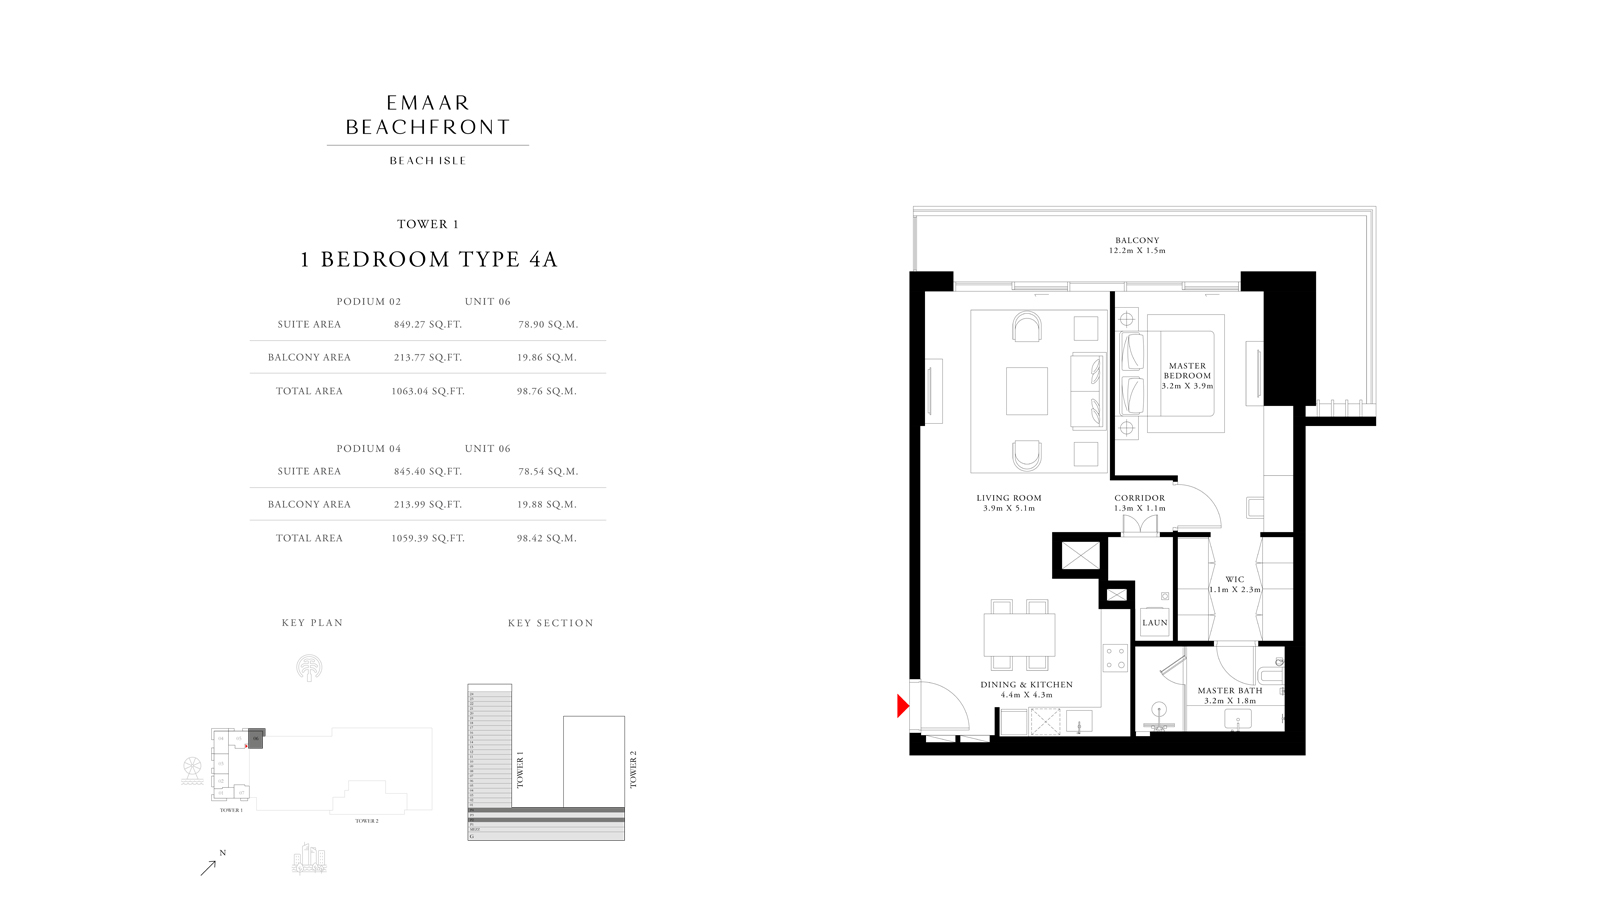 1 Bedroom Type 4A Tower 1, Size 1059    sq. ft.